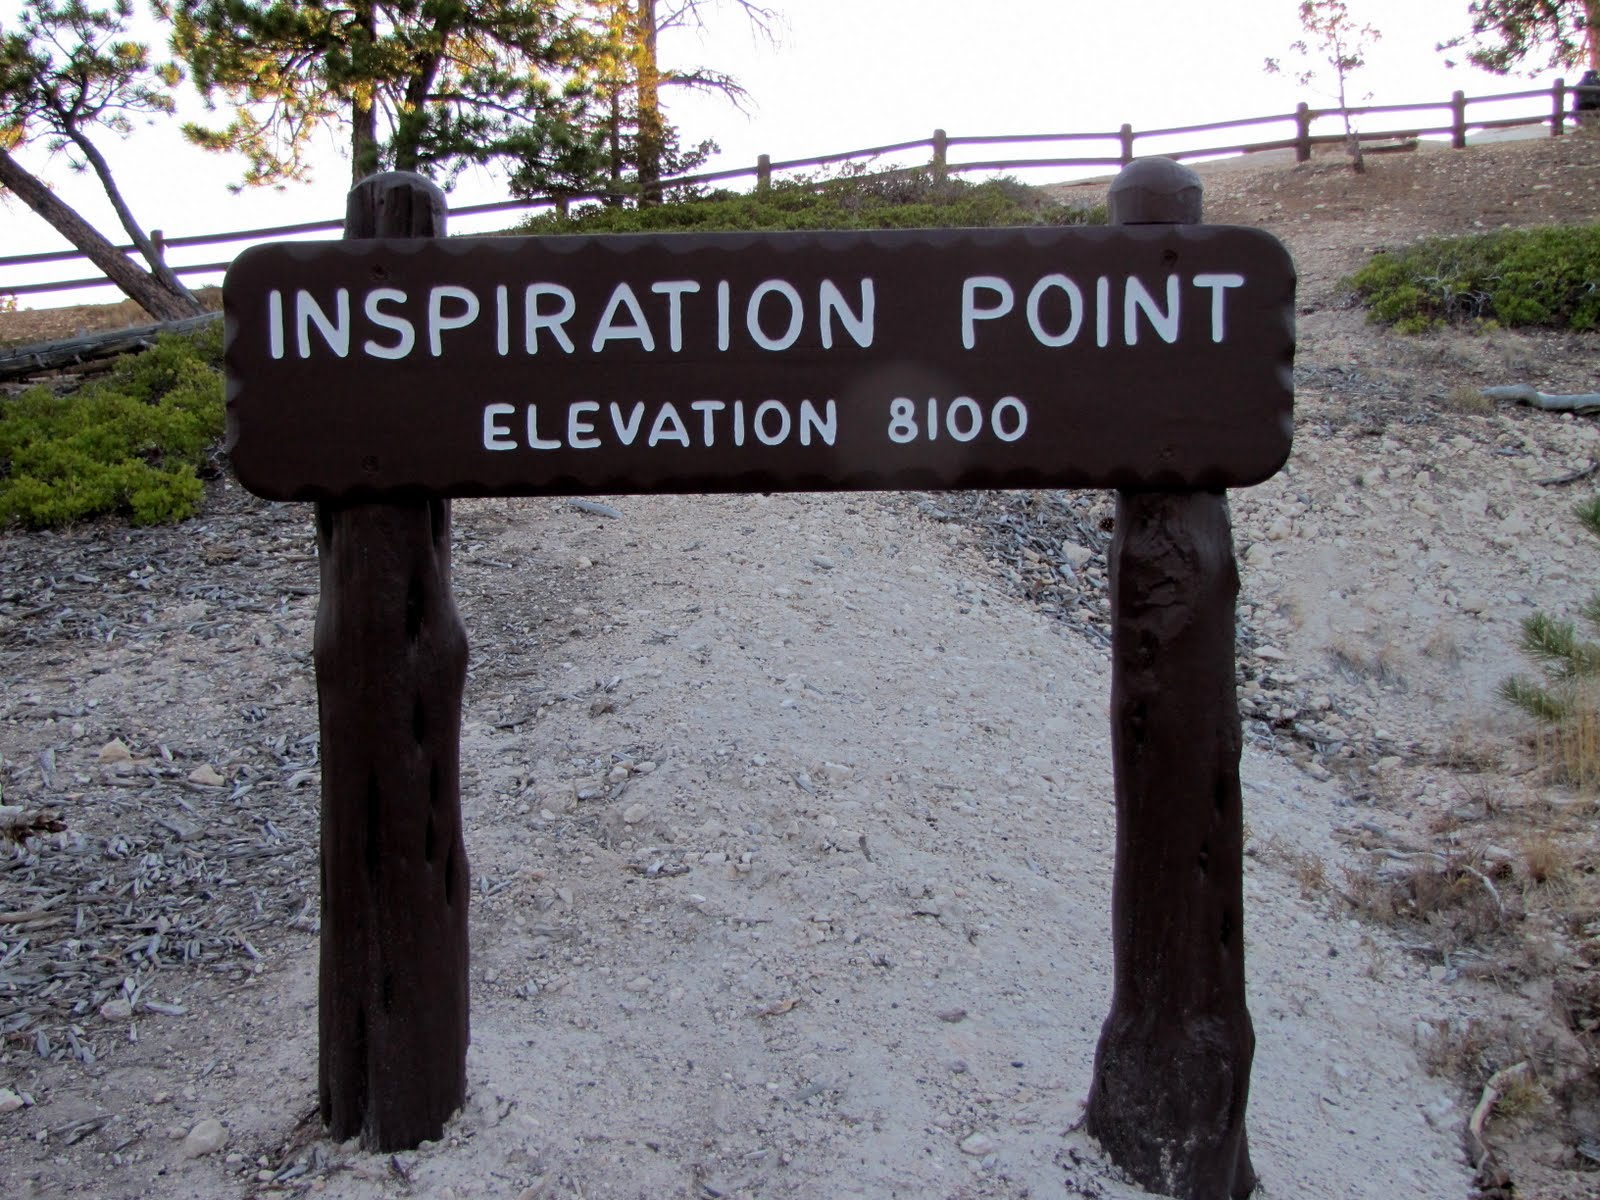 At Inspiration Point